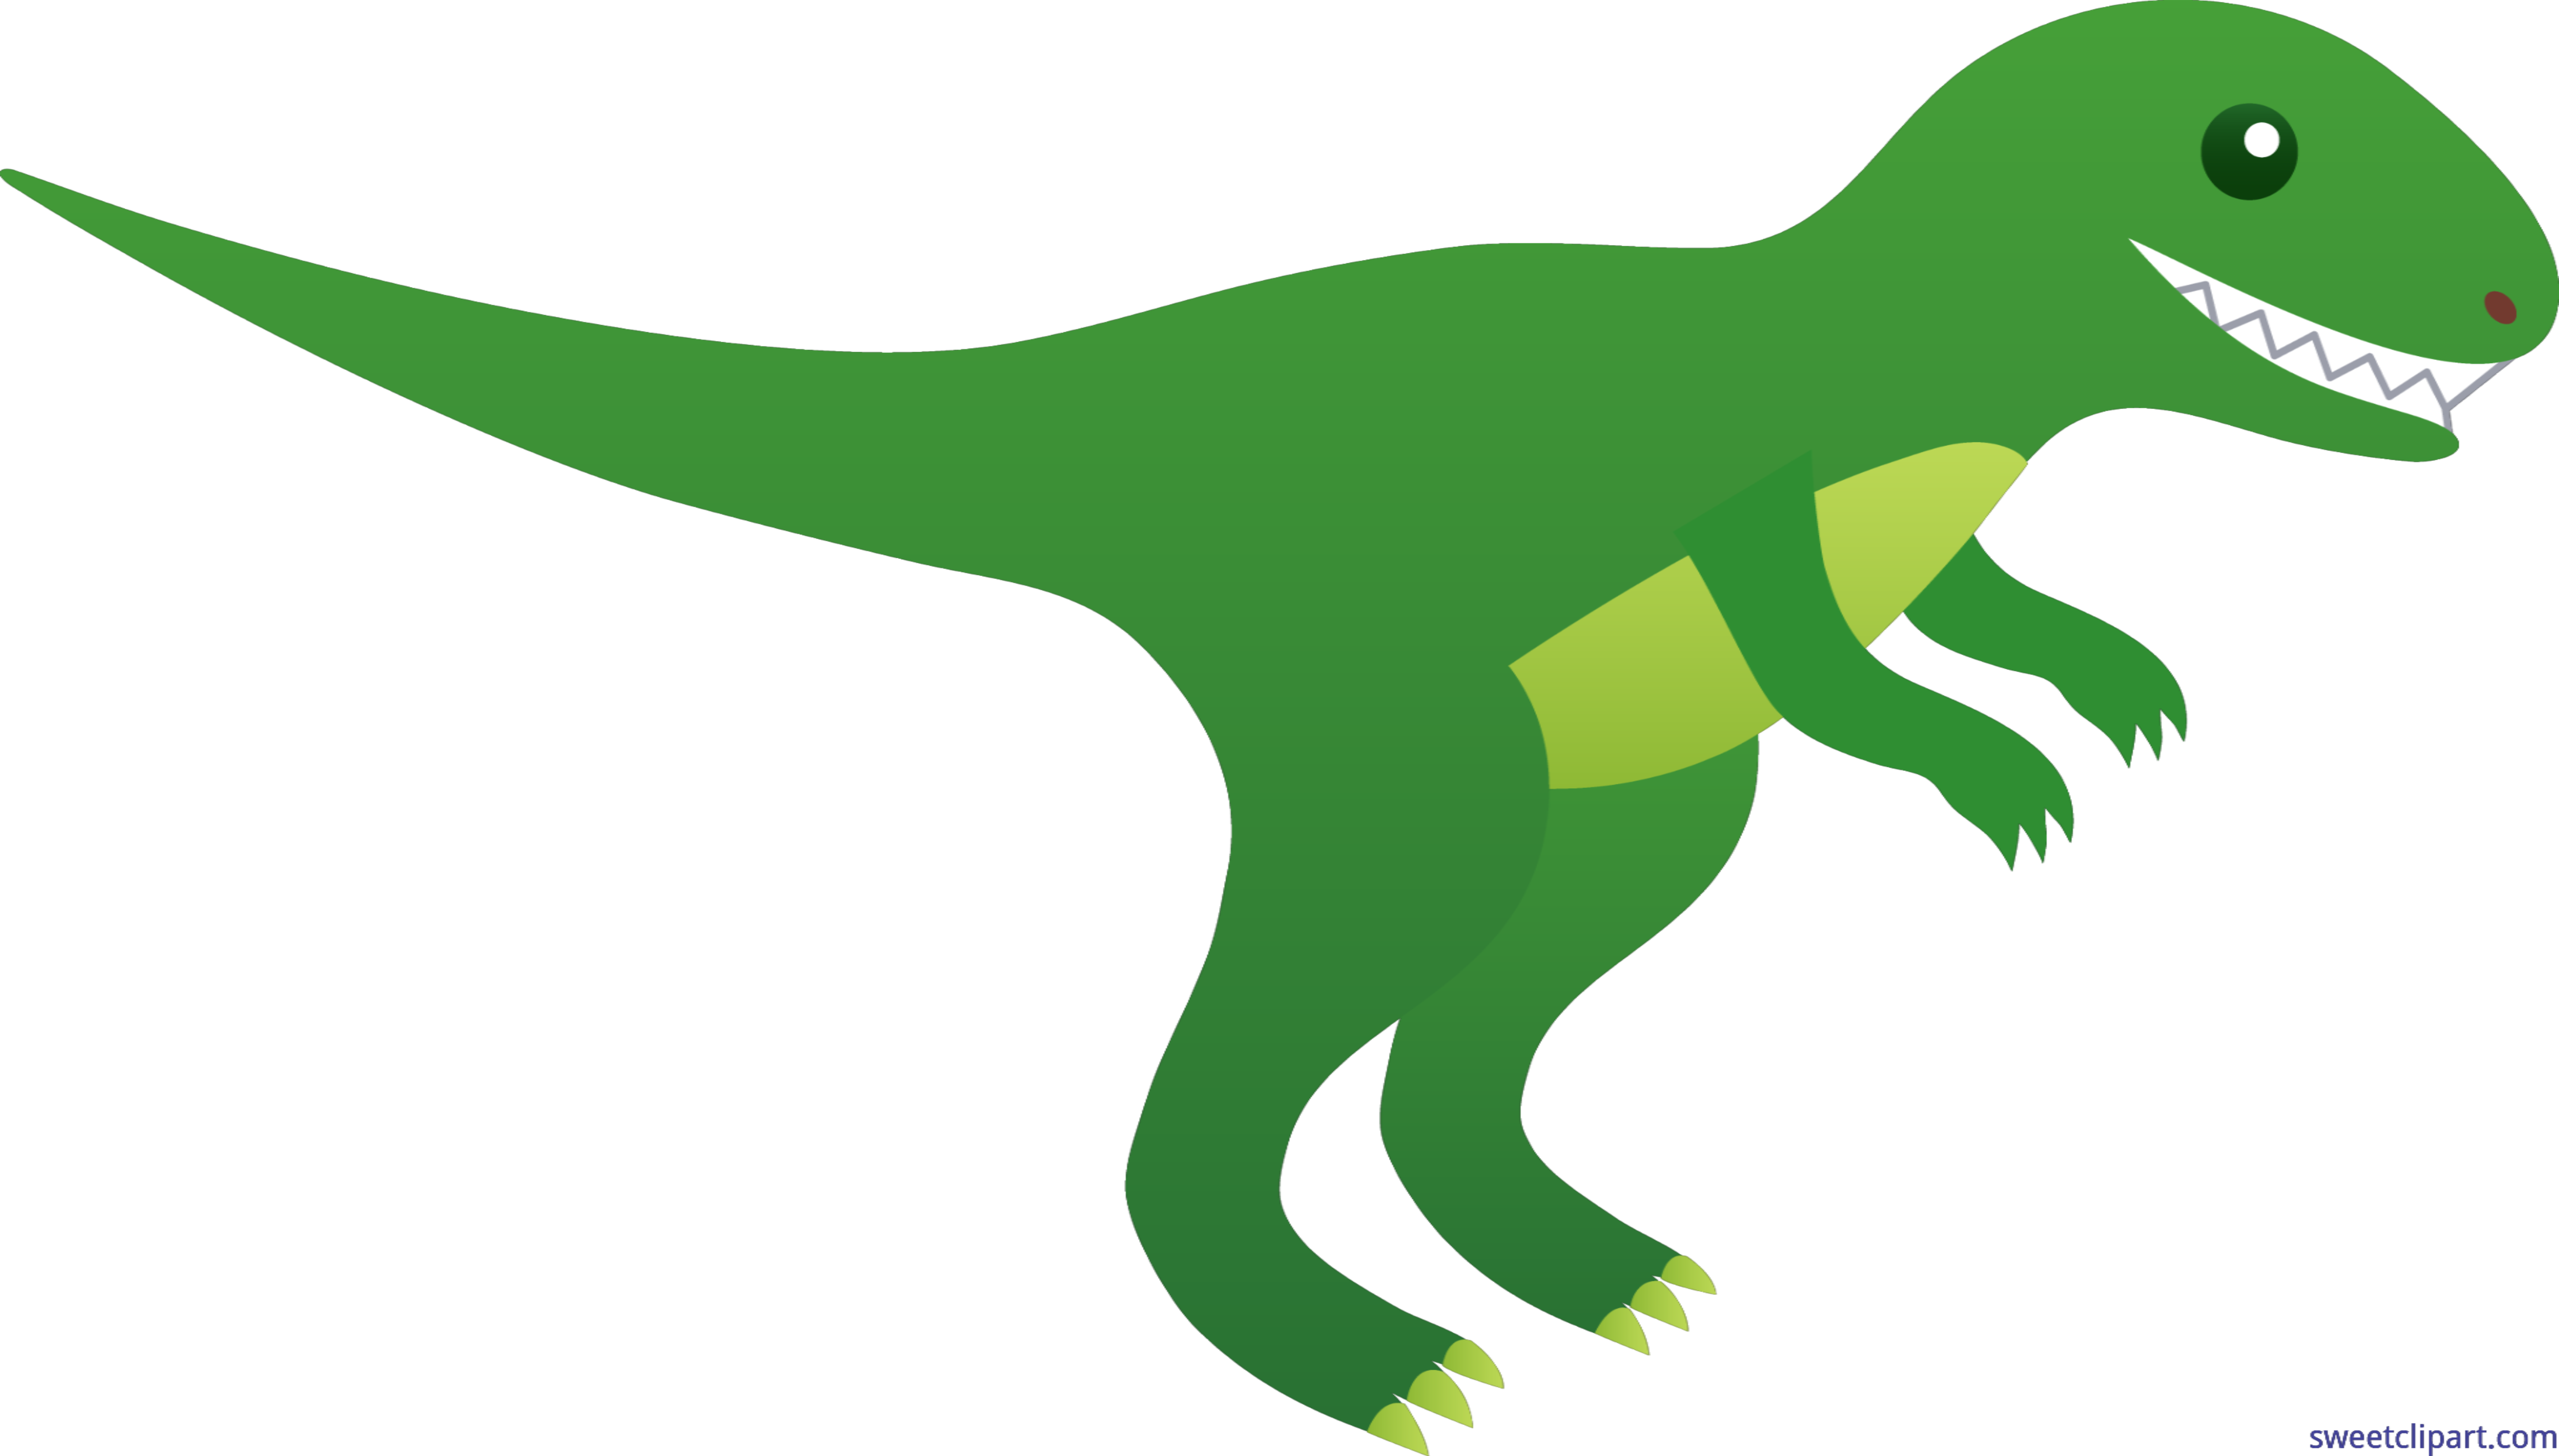 Clipart t rex clipart images gallery for free download.